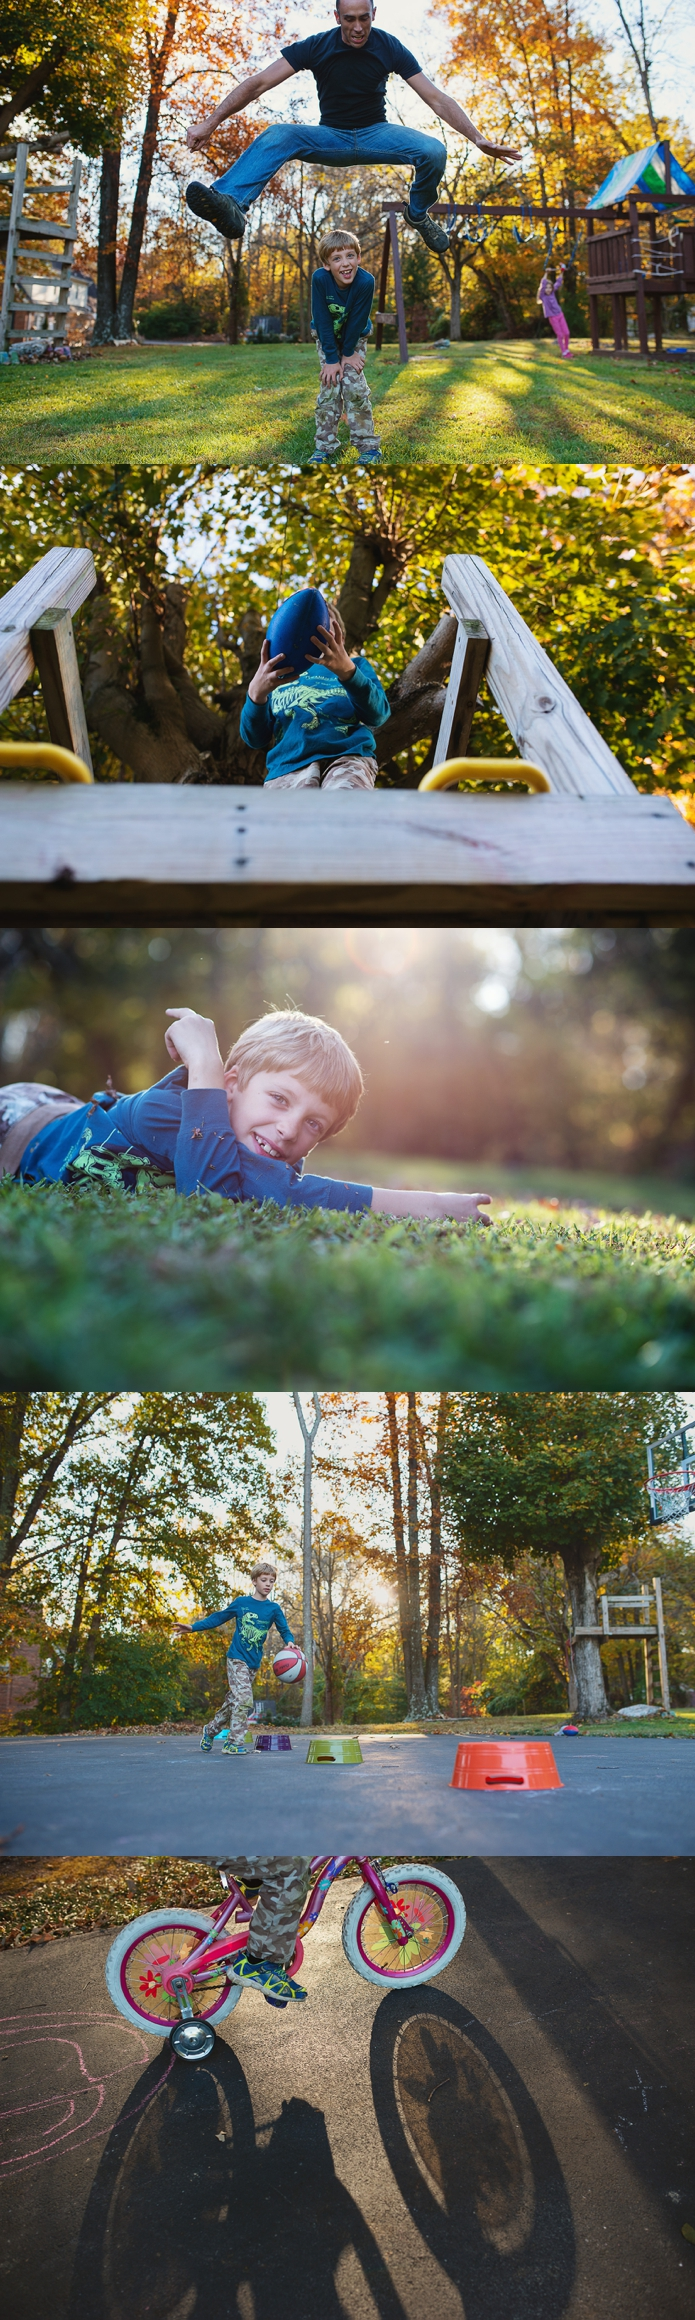 backyard play in fall by Carey Pace 2014